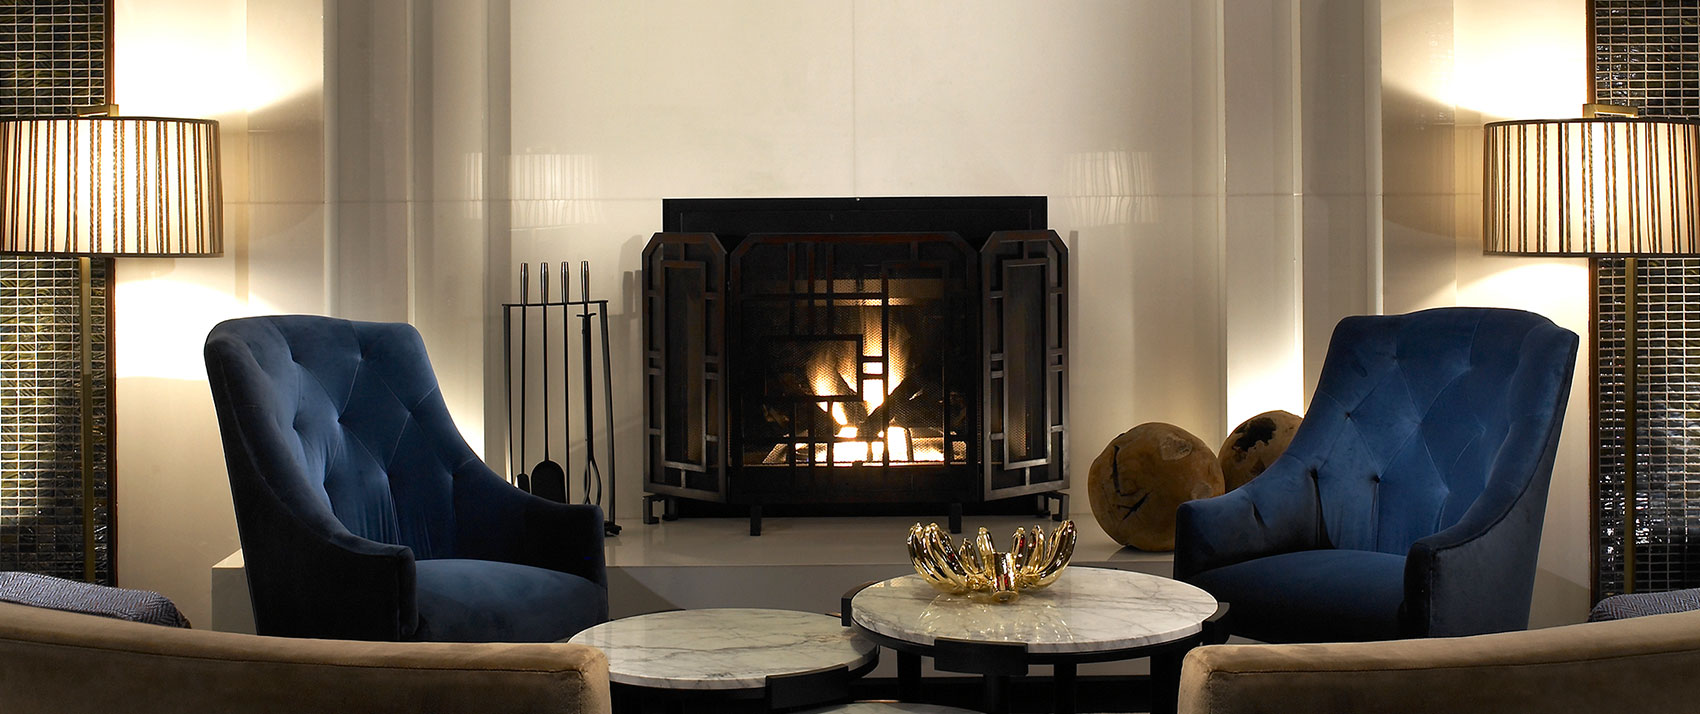 Kimpton Hotel Palomar Philadelphia lobby living room with seating, circular marbletop coffee tables, and a fireplace